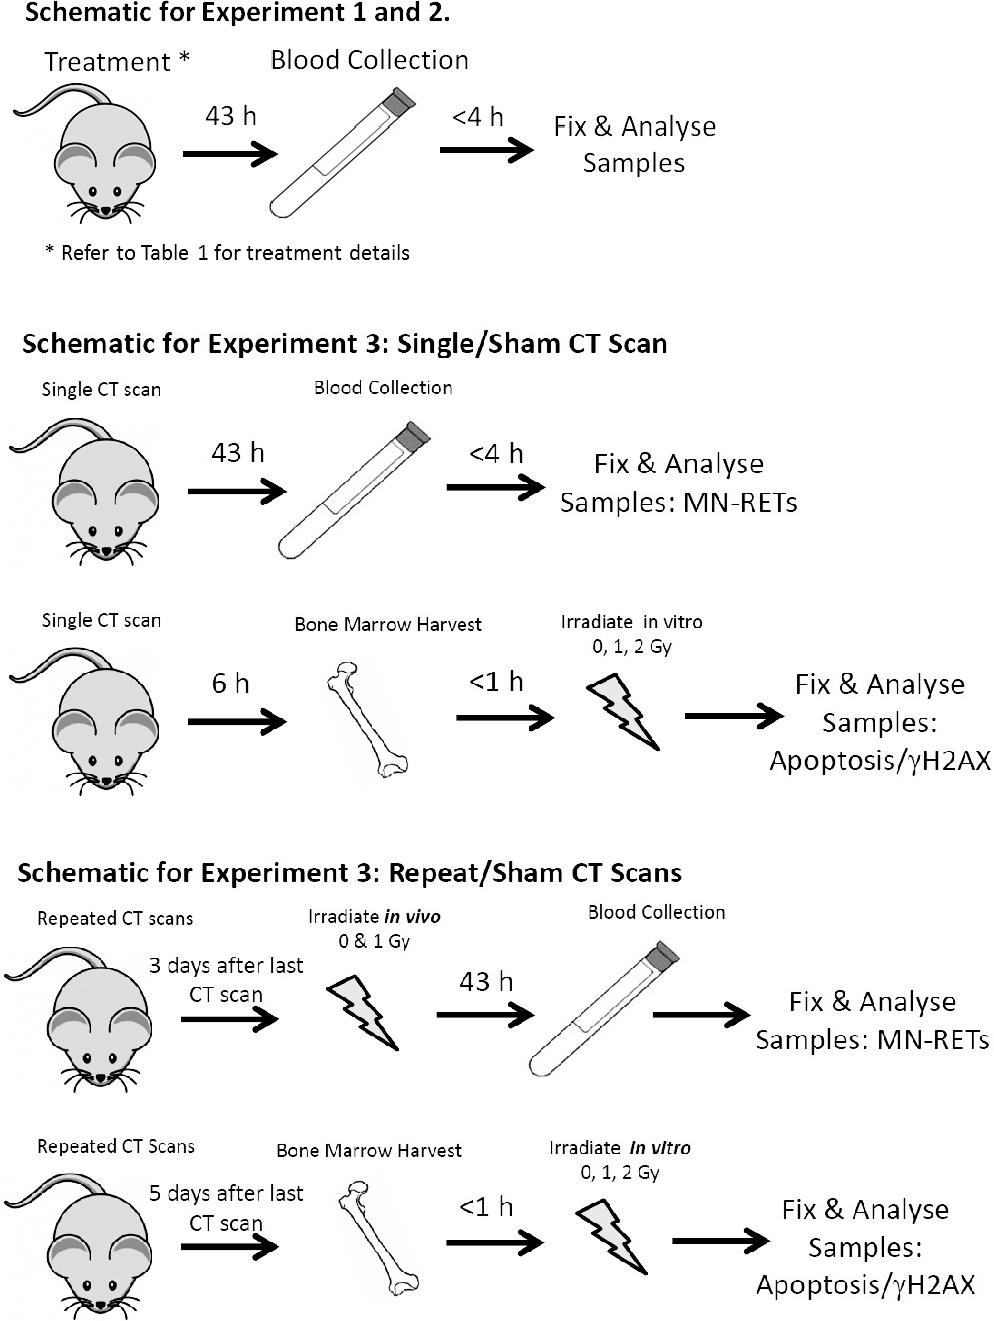 Biological Effects and Adaptive Response from Single and Repeated